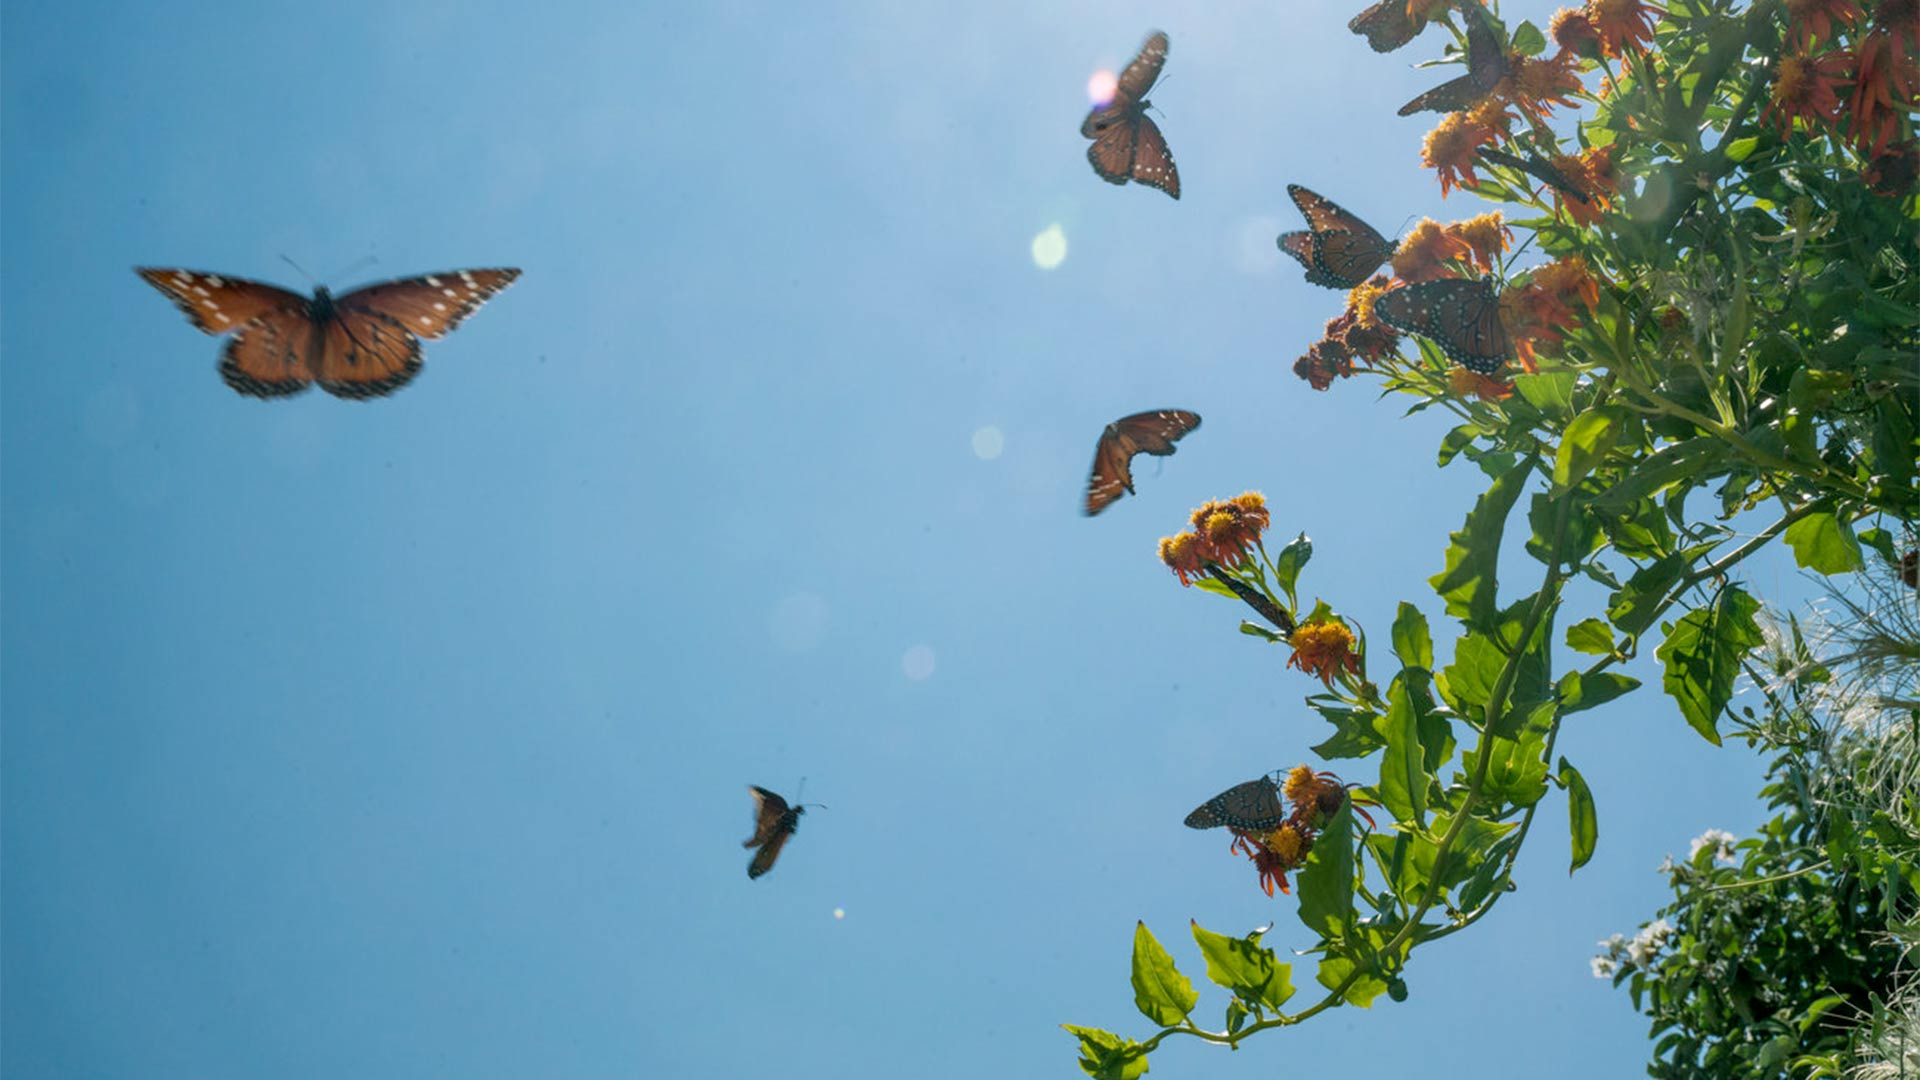 Butterflies swarm a flowering plant at the National Butterfly Center, a 100-acre wildlife center and botanical garden in Hidalgo County, Texas.